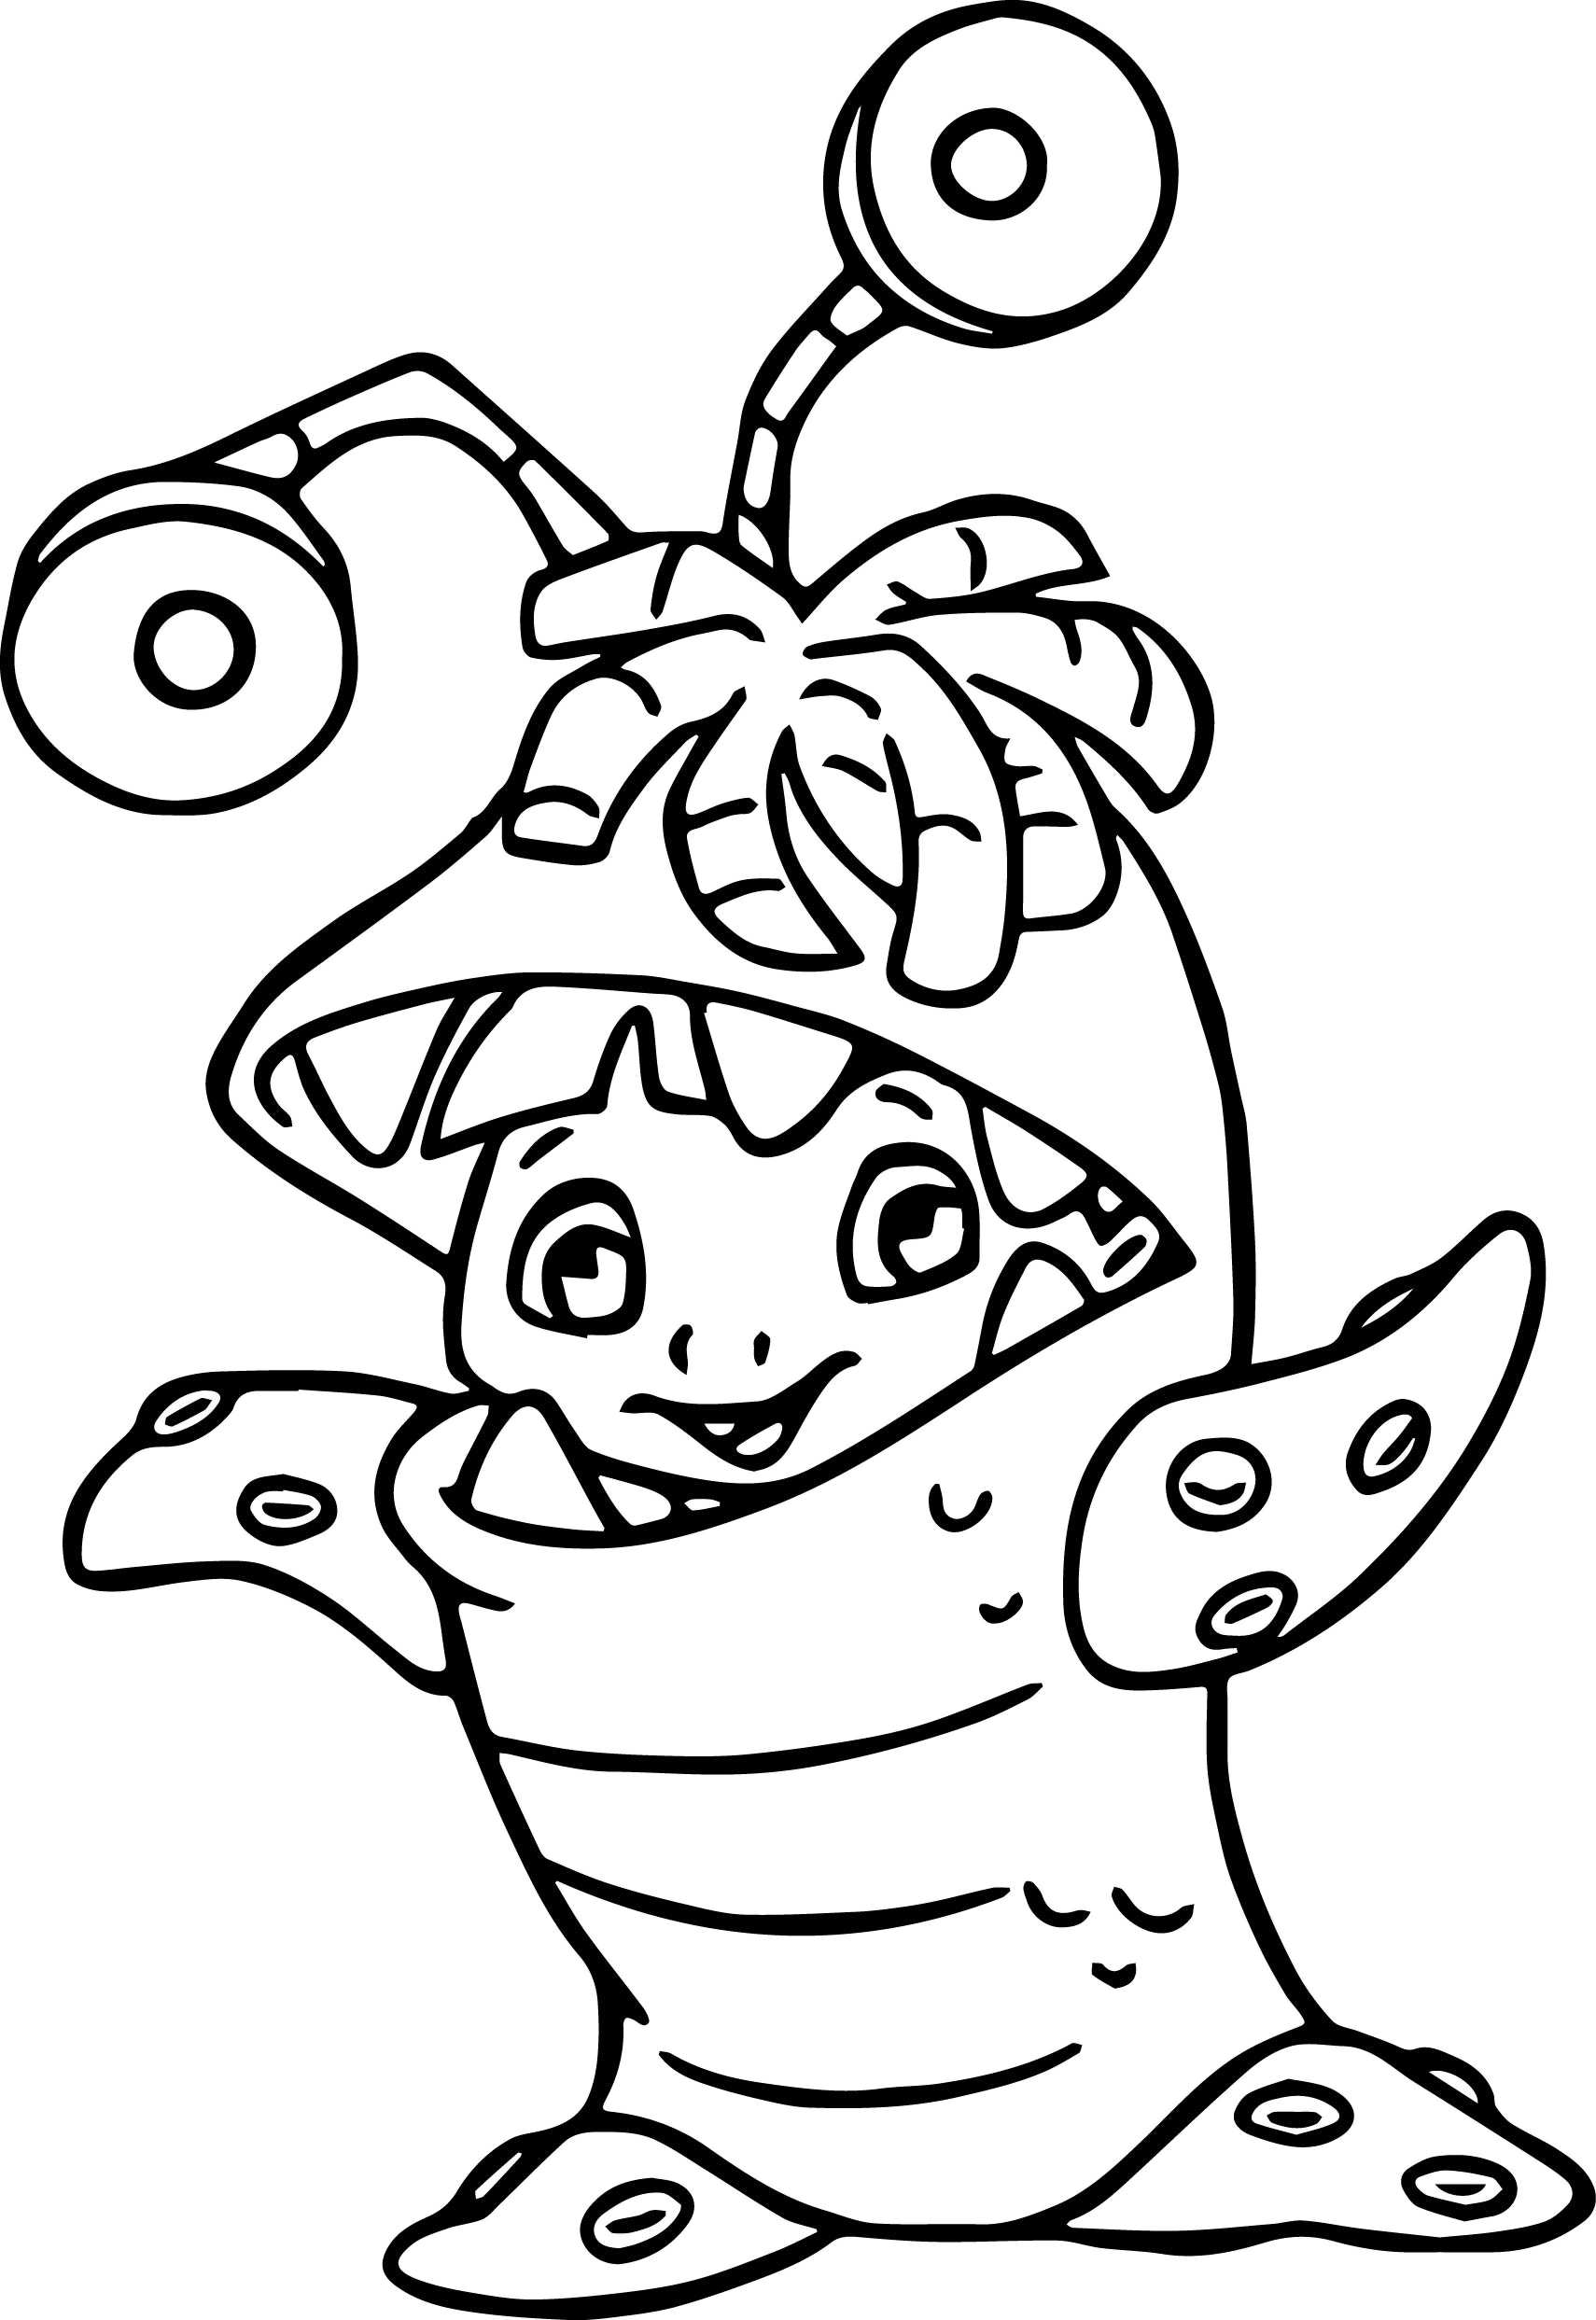 Mermaid coloring pages free download best mermaid for Mike wazowski coloring page